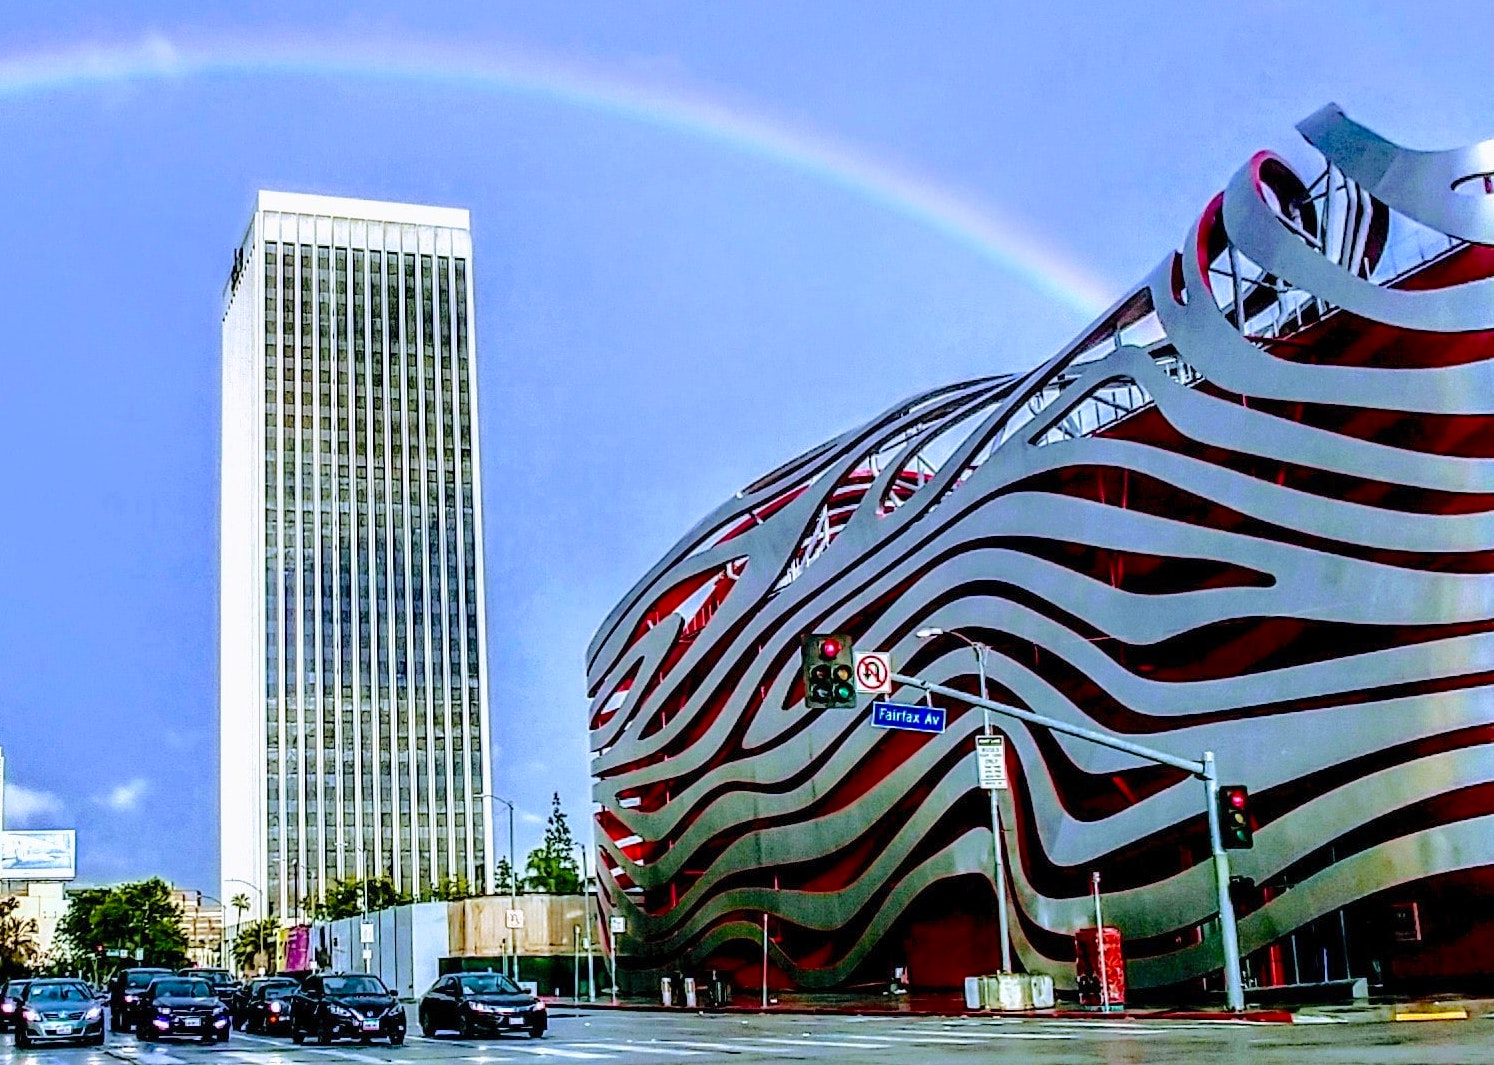 Exterior of the Peterson Automotive Museum under a rainbow